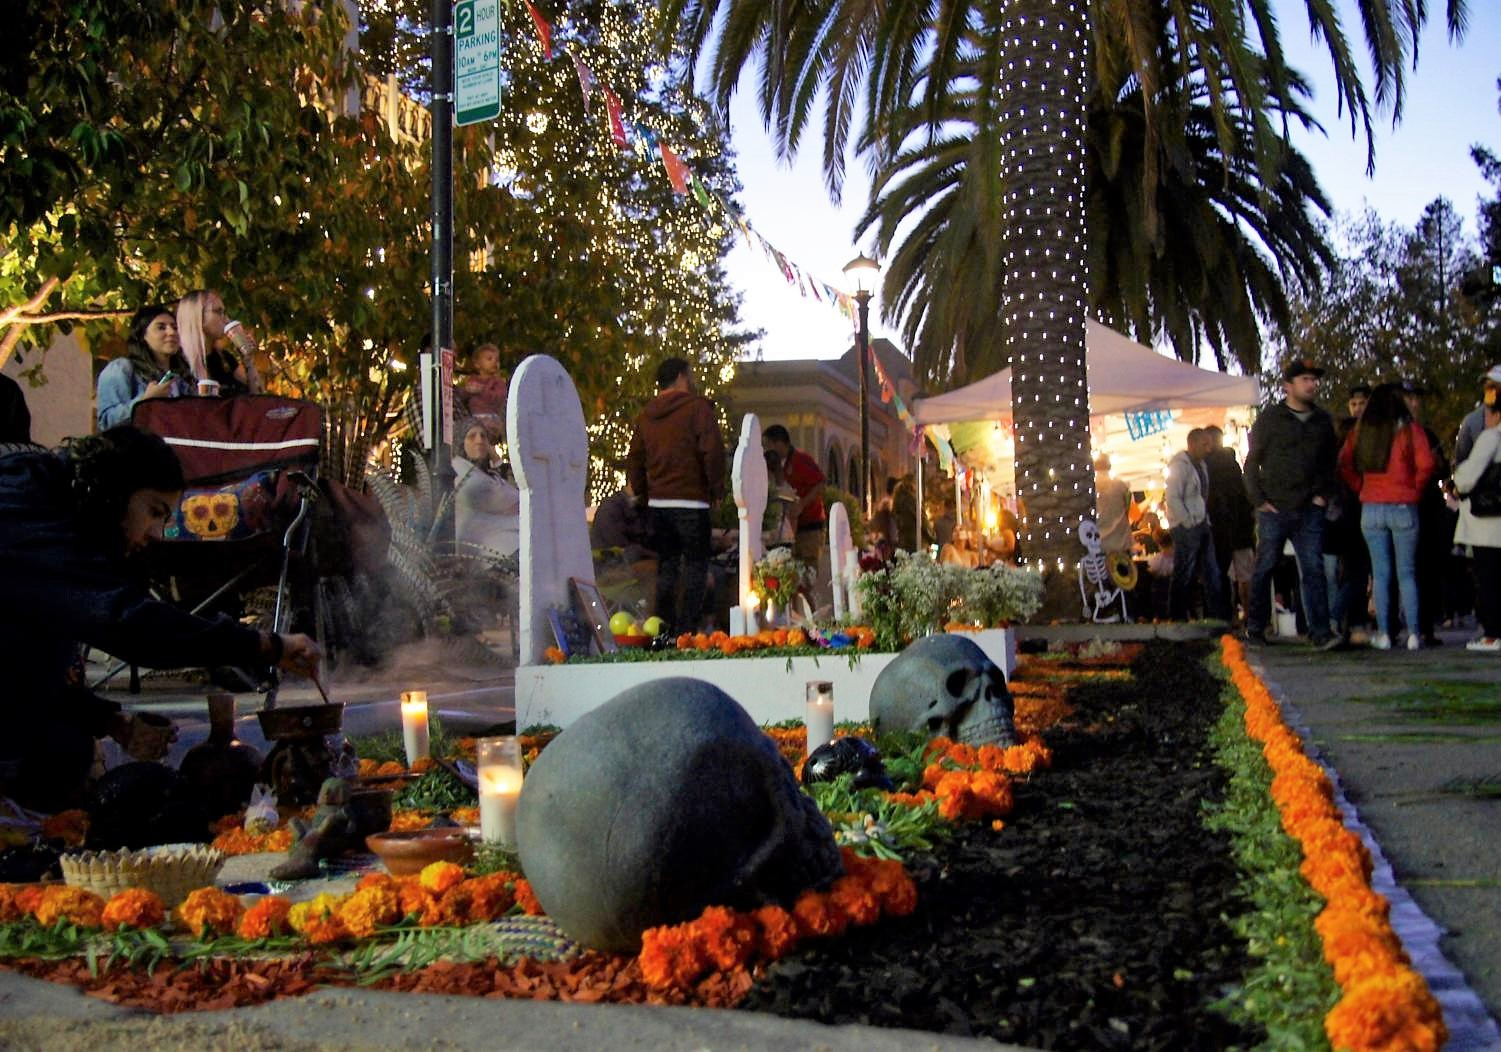 An ofrenda with burning incense and Aztec marigolds pays respect to the loved ones who have passed away.